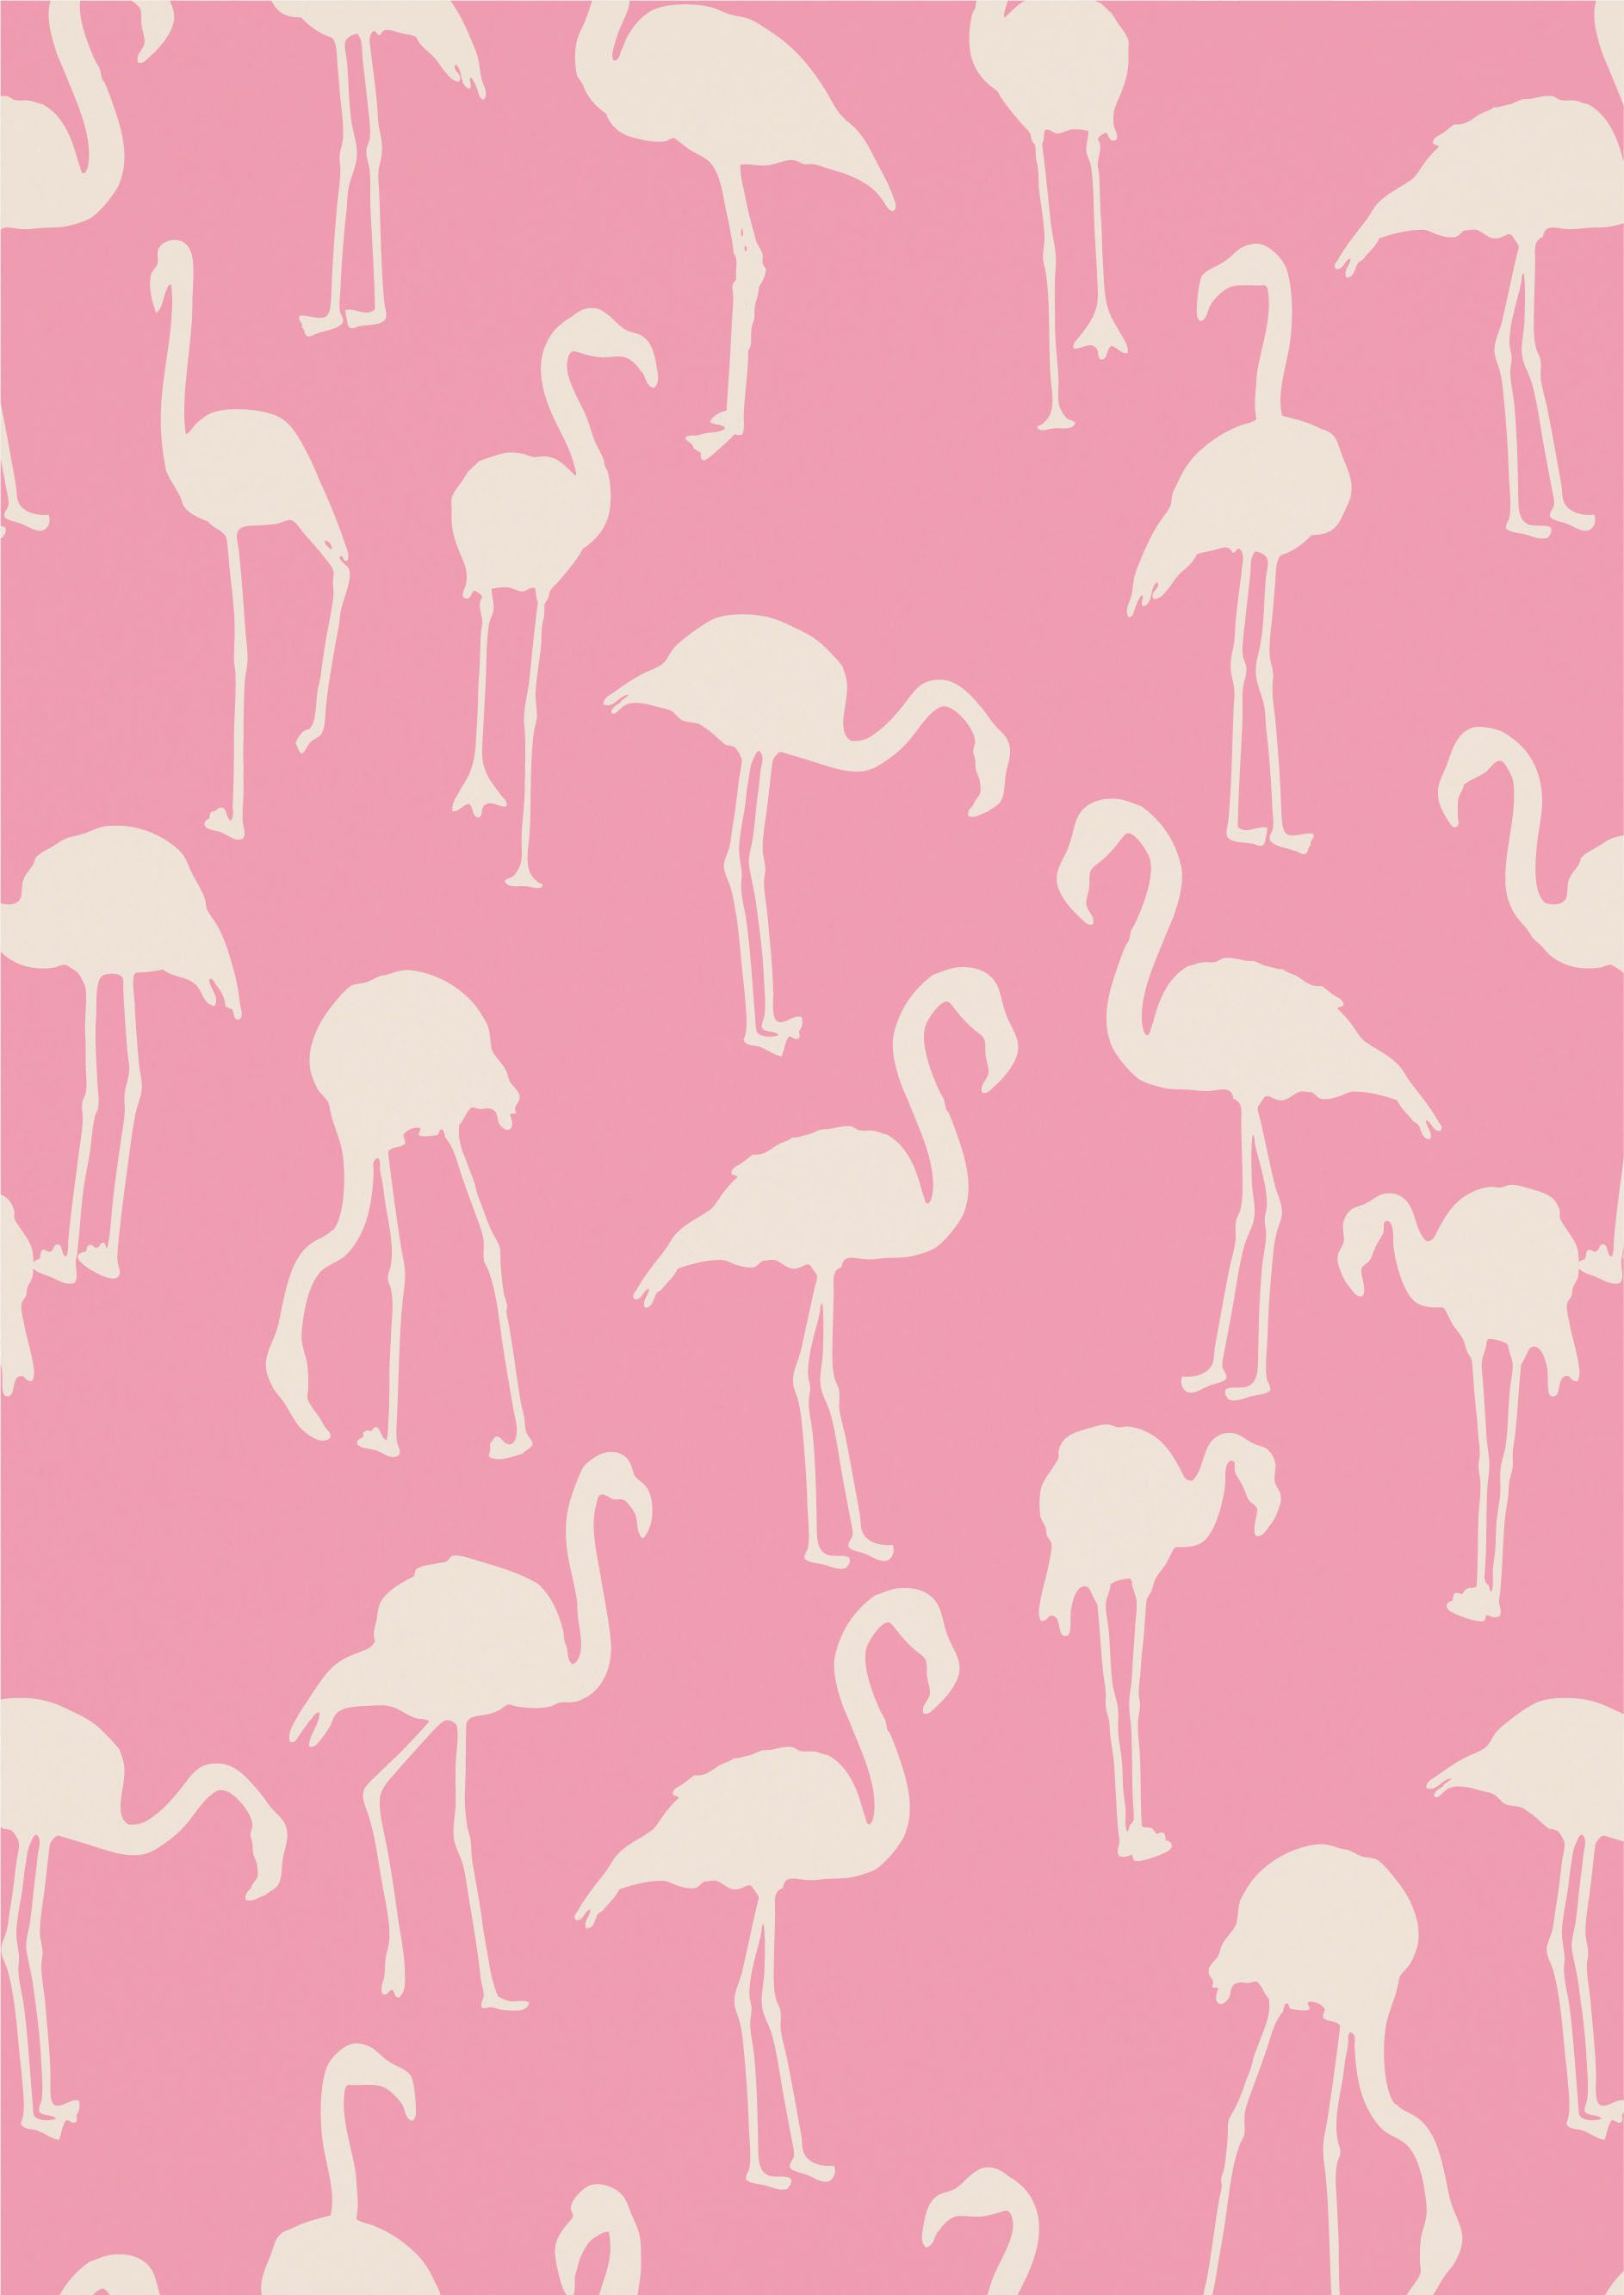 Fotowand Hintergrund Flamingo Pattern Need This As Wrapping Paper Fotowand